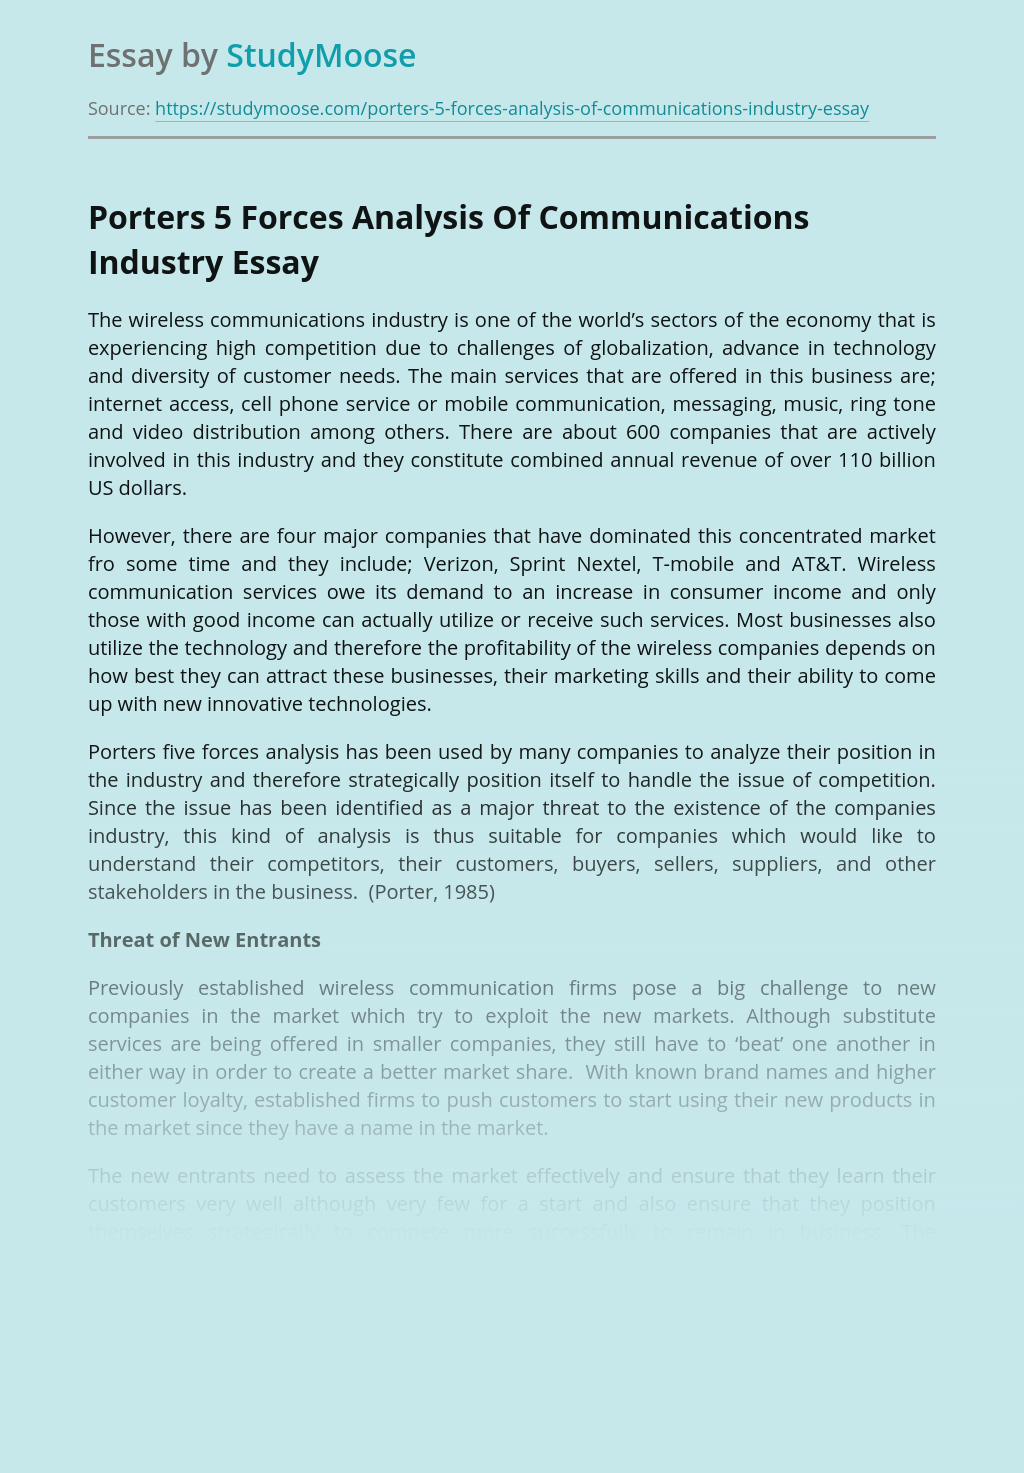 Porters 5 Forces Analysis Of Communications Industry